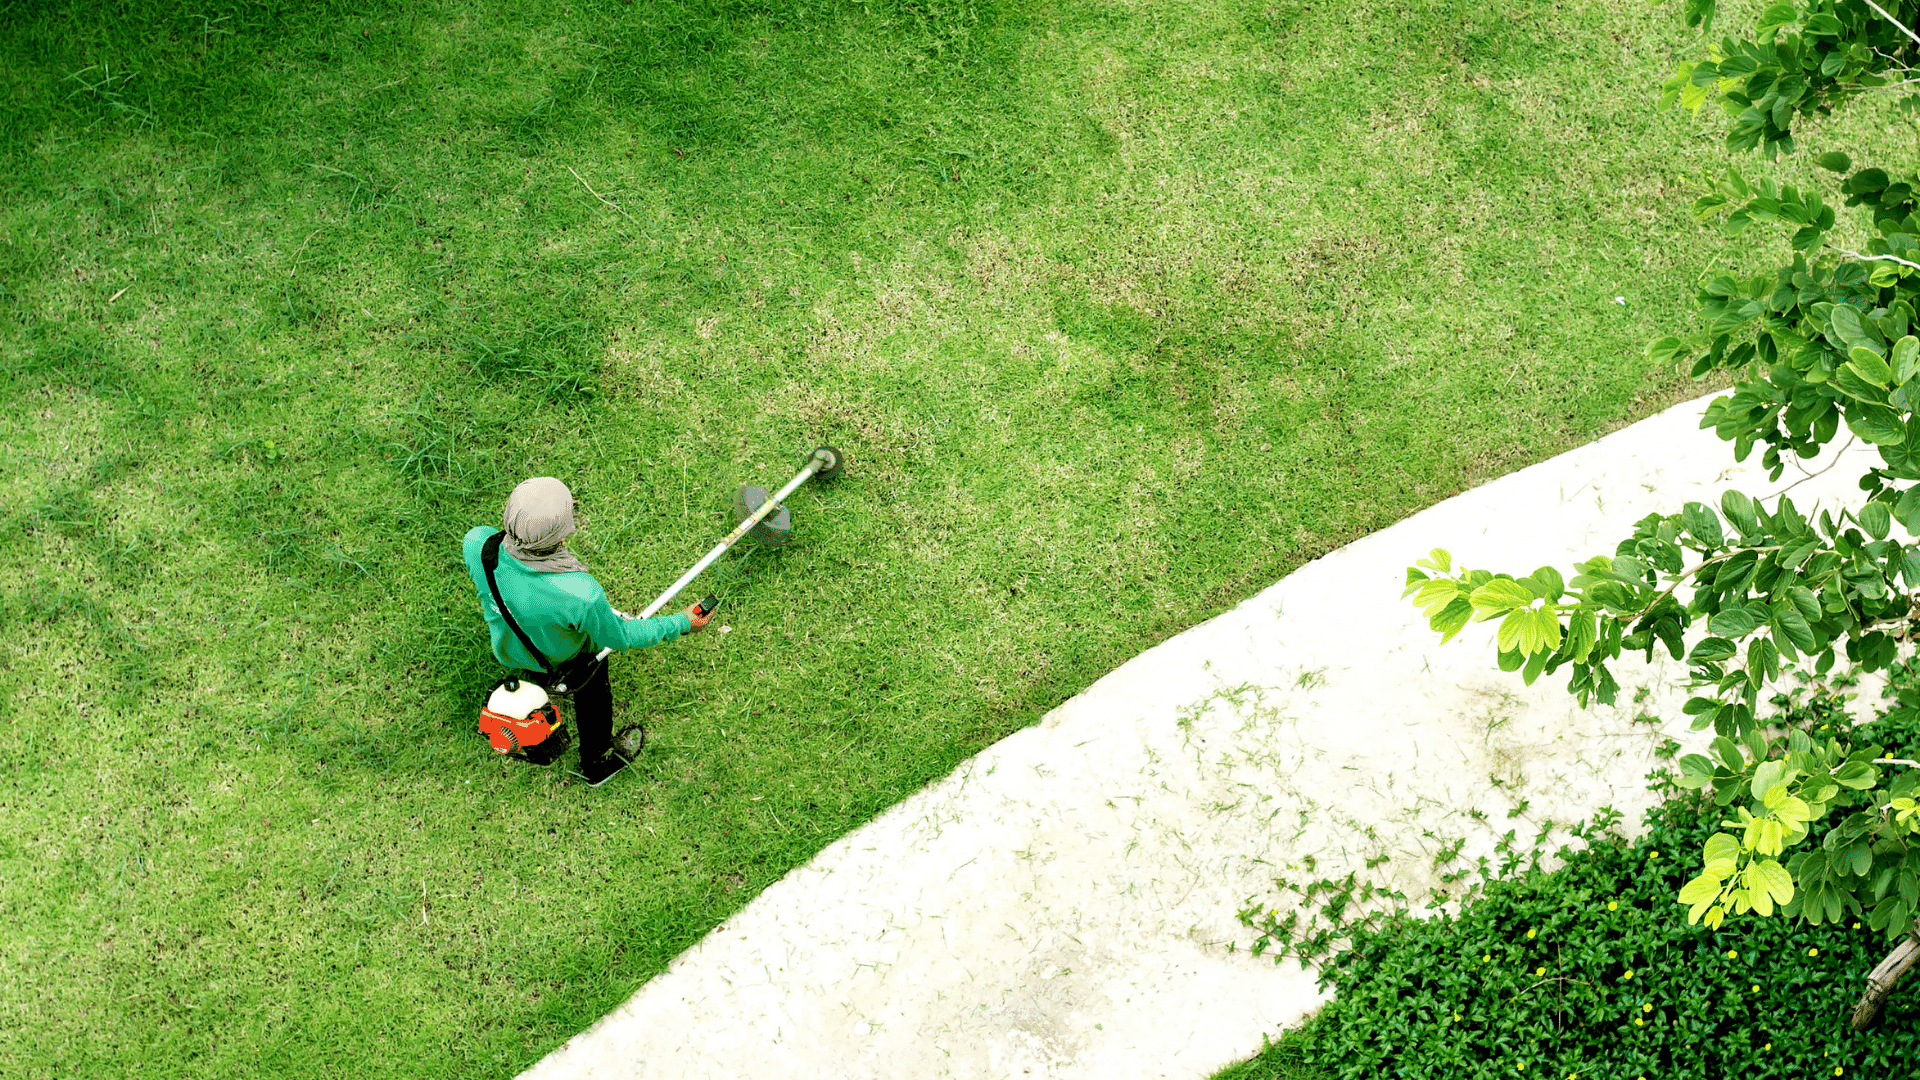 Cutting grass with edger